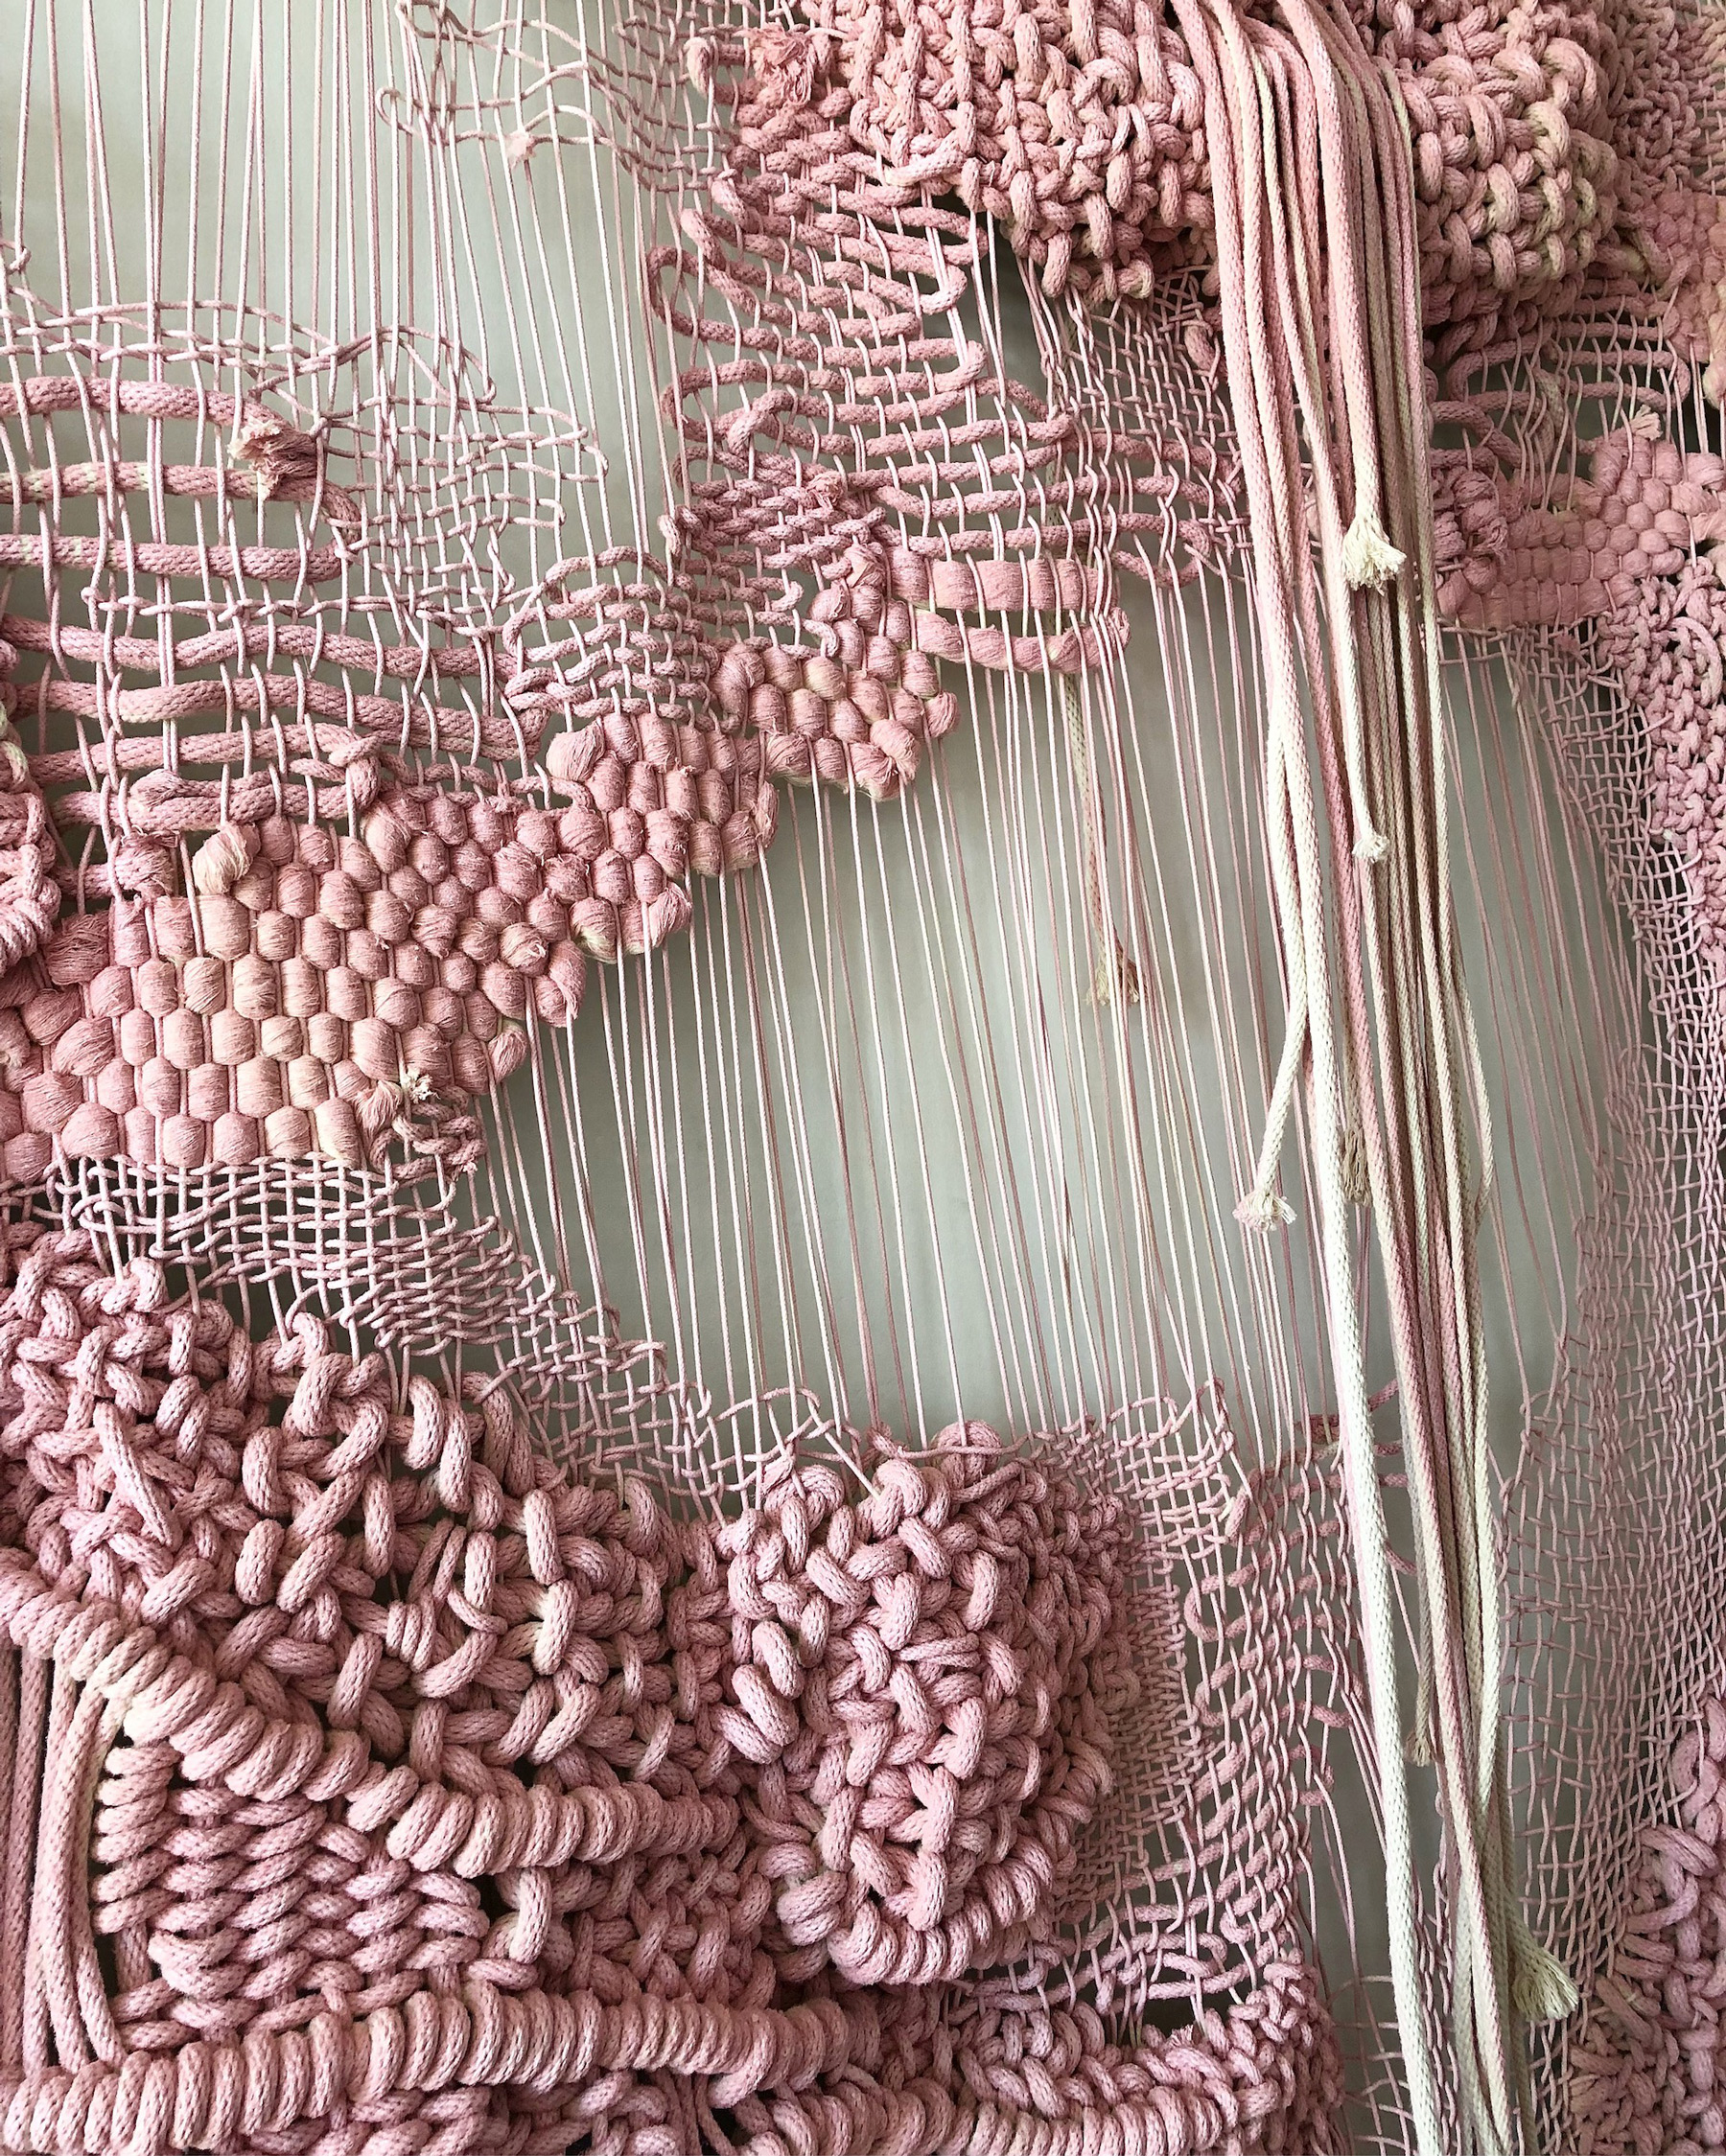 untitled vi {full} naturally nasty, detail  Braided cotton cord, enamel, bronze L9'xW8' (10' bar) 2018